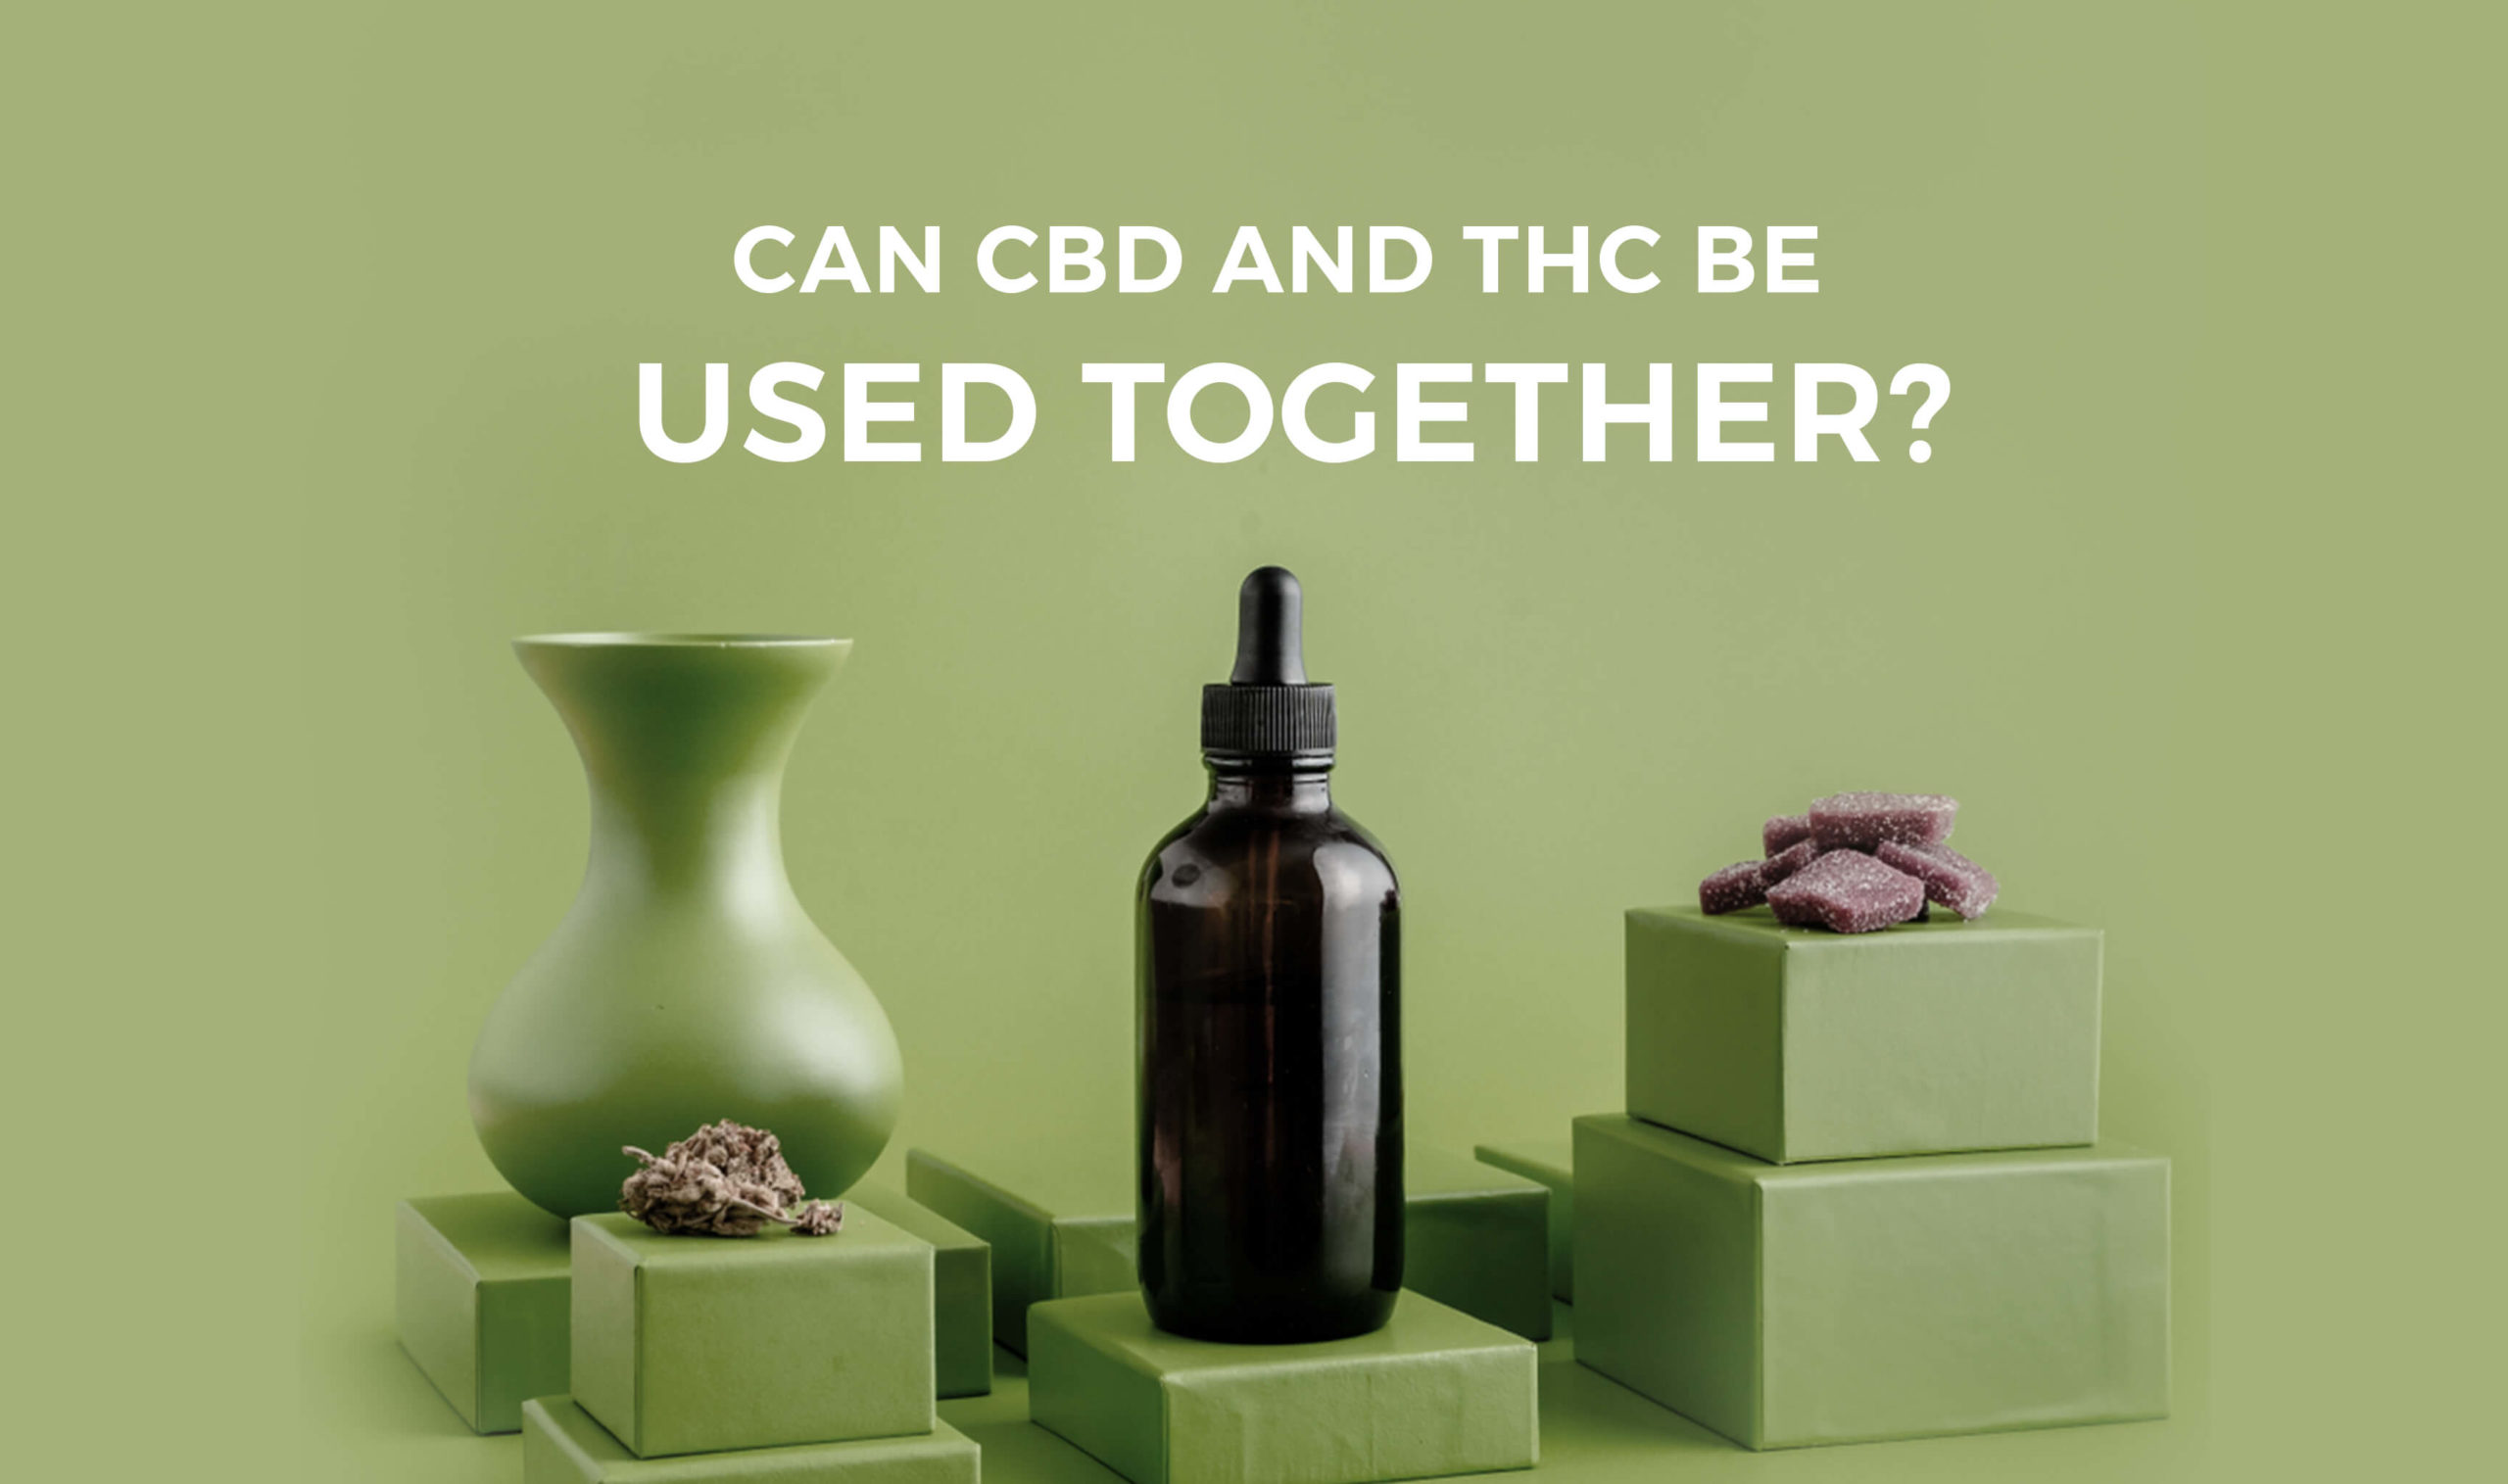 Can CBD and THC Be Used Together